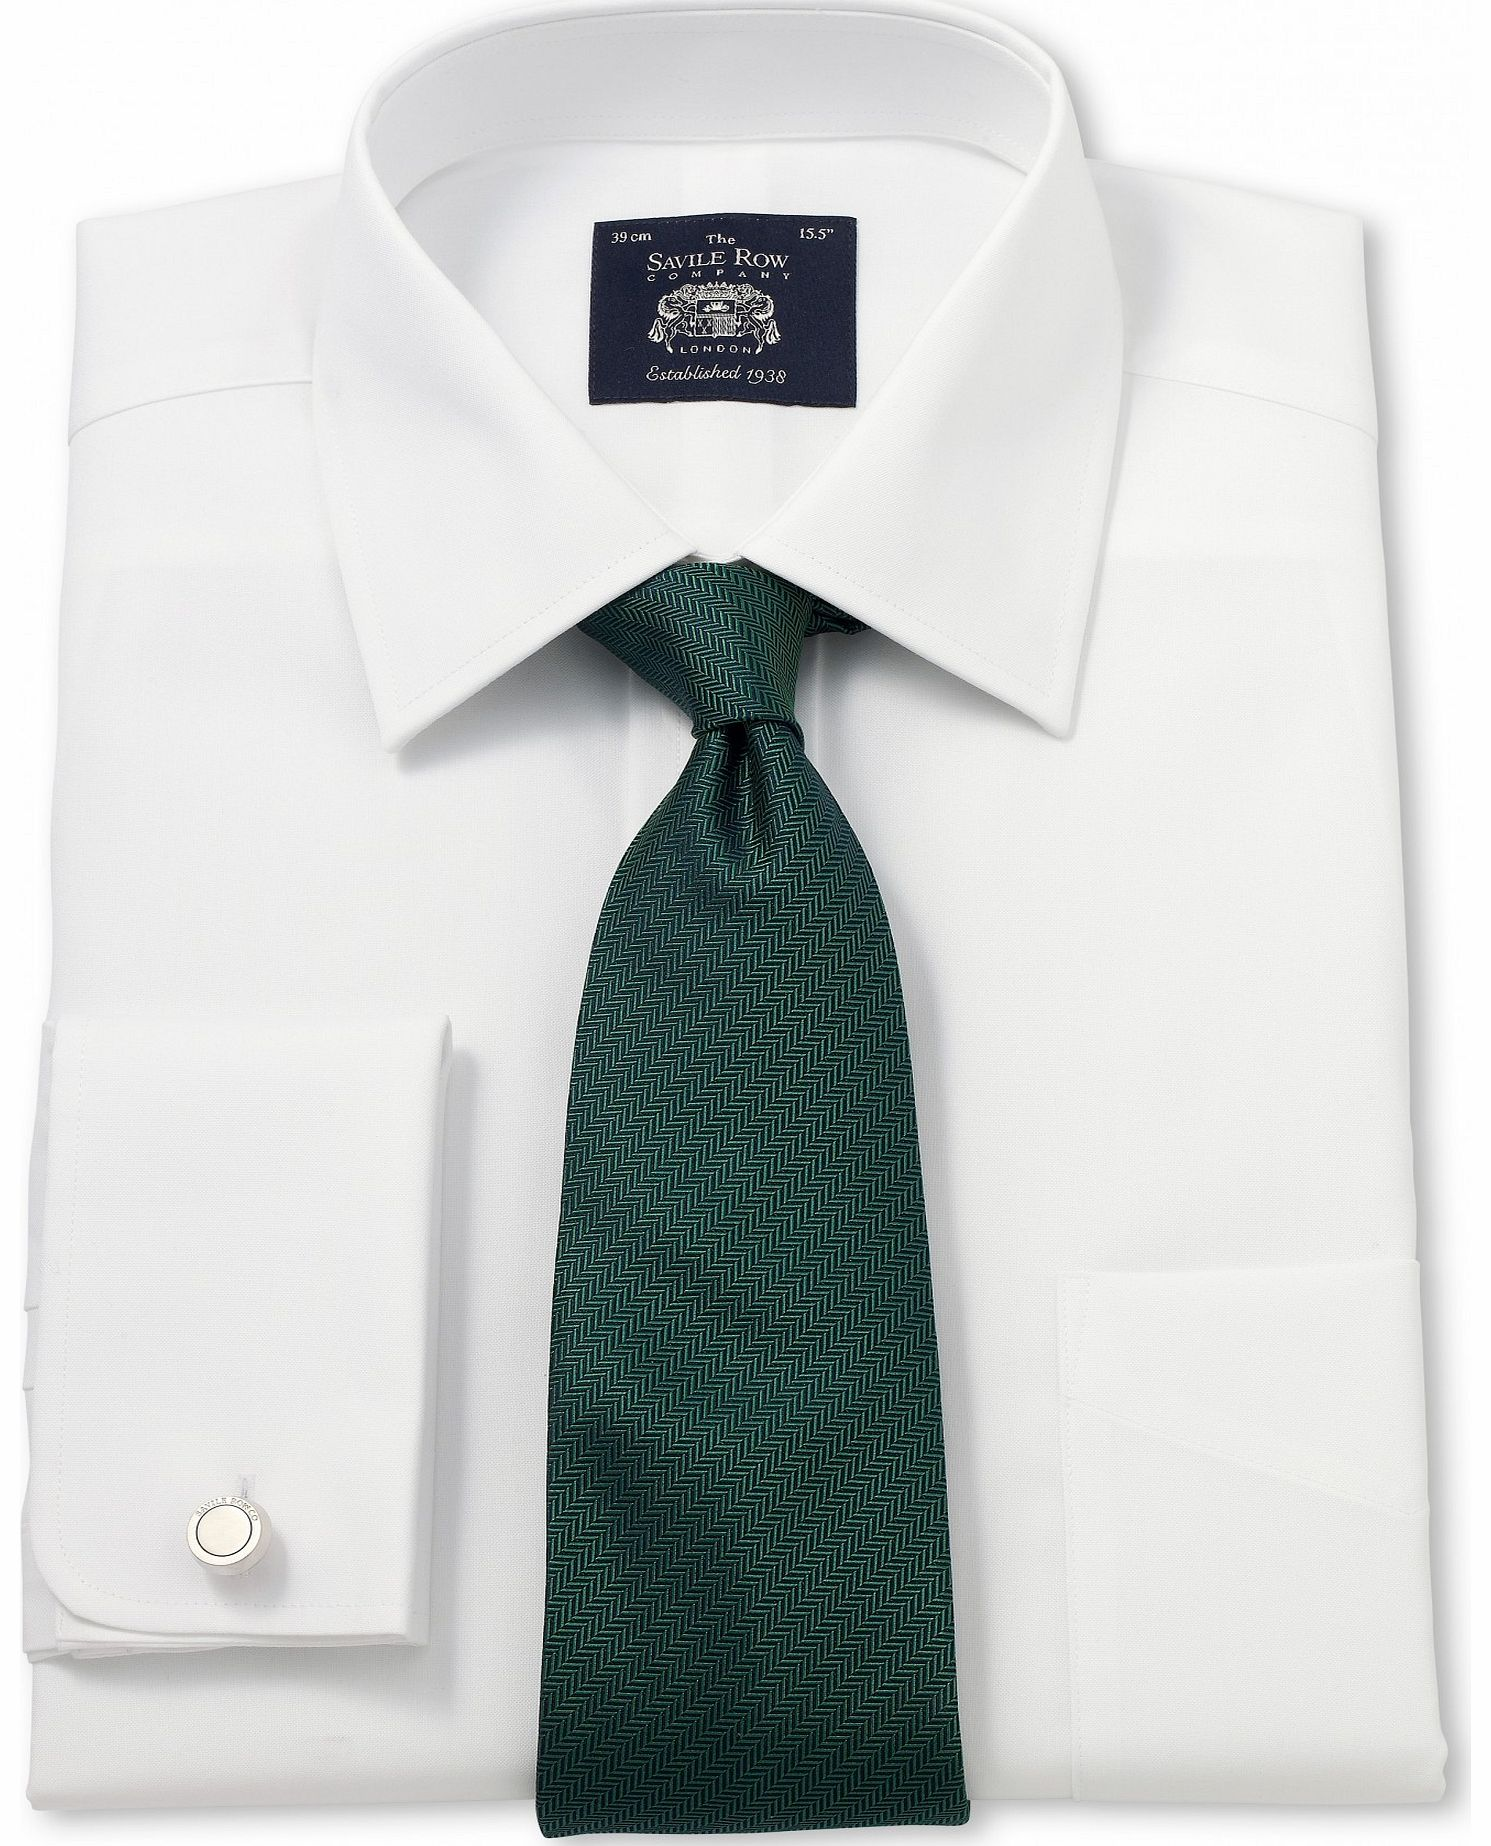 Savile Row Company White Non-Iron Classic Fit Shirt 19 1/2`` product image